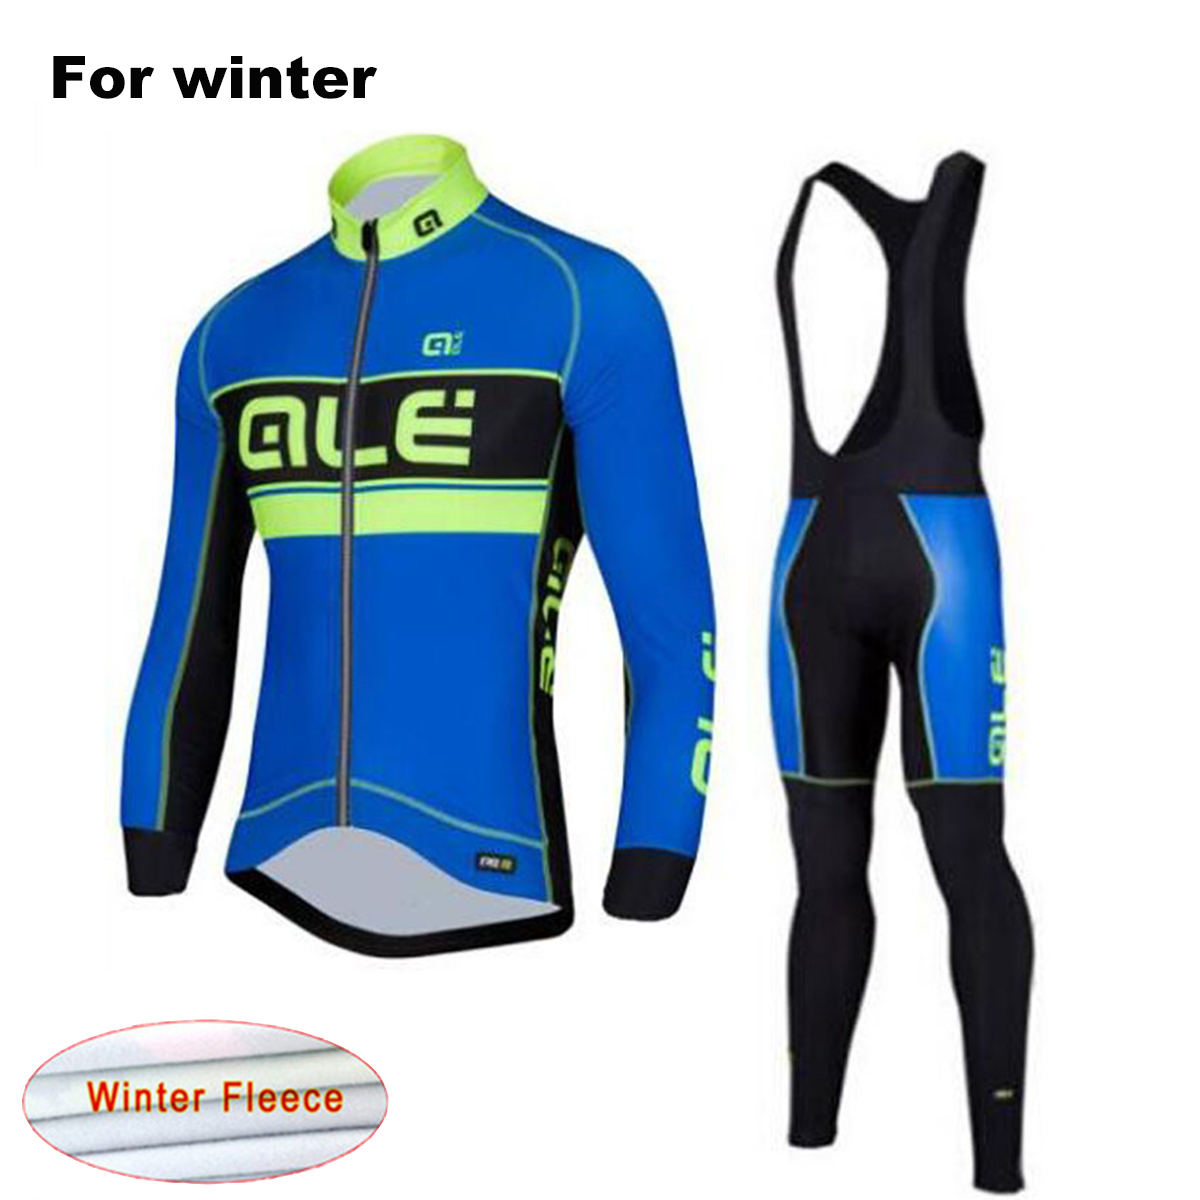 2017 Ale Team Winter Long Sleeves Bicycle Clothing Thermal Fleece Cycling Jersey Set Outdoor Sport Coat Bib Suit with 9D Gel Pad mavic winter thermal fleece bicycle clothing bib set men s long sleeves cycling jersey warm outdoor sport coat suit 9d gel pad